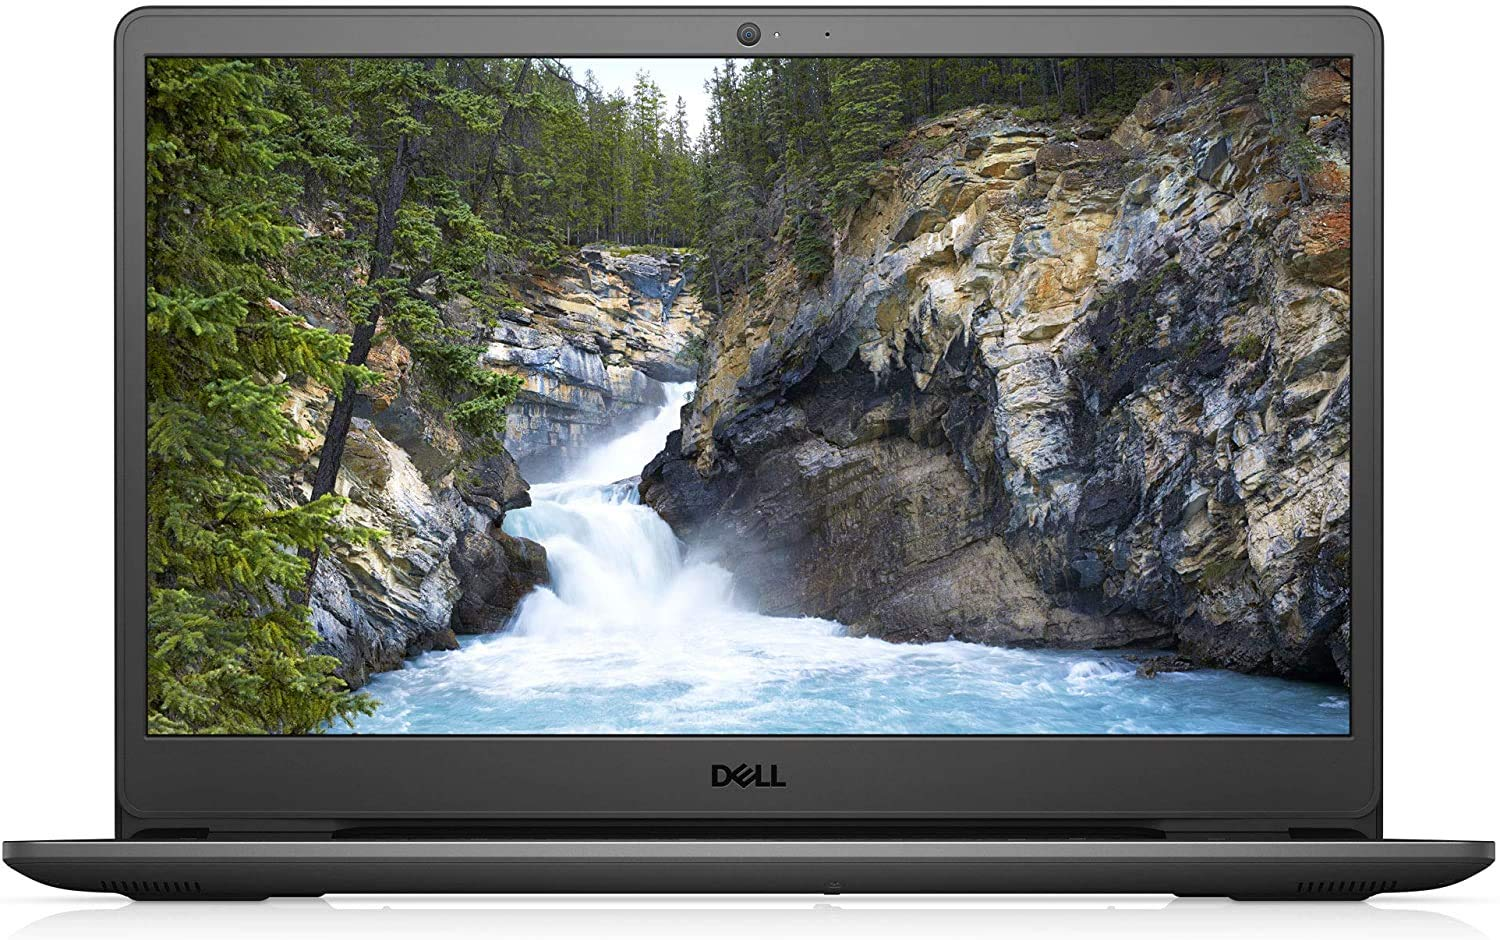 Dell Inspiron 3501 15.6 inch FHD Laptop  10th Gen Core i3 1005G1/4 GB/1TB HDD/Windows 10 Home + MS Office/Intel HD Graphics , Accent Black